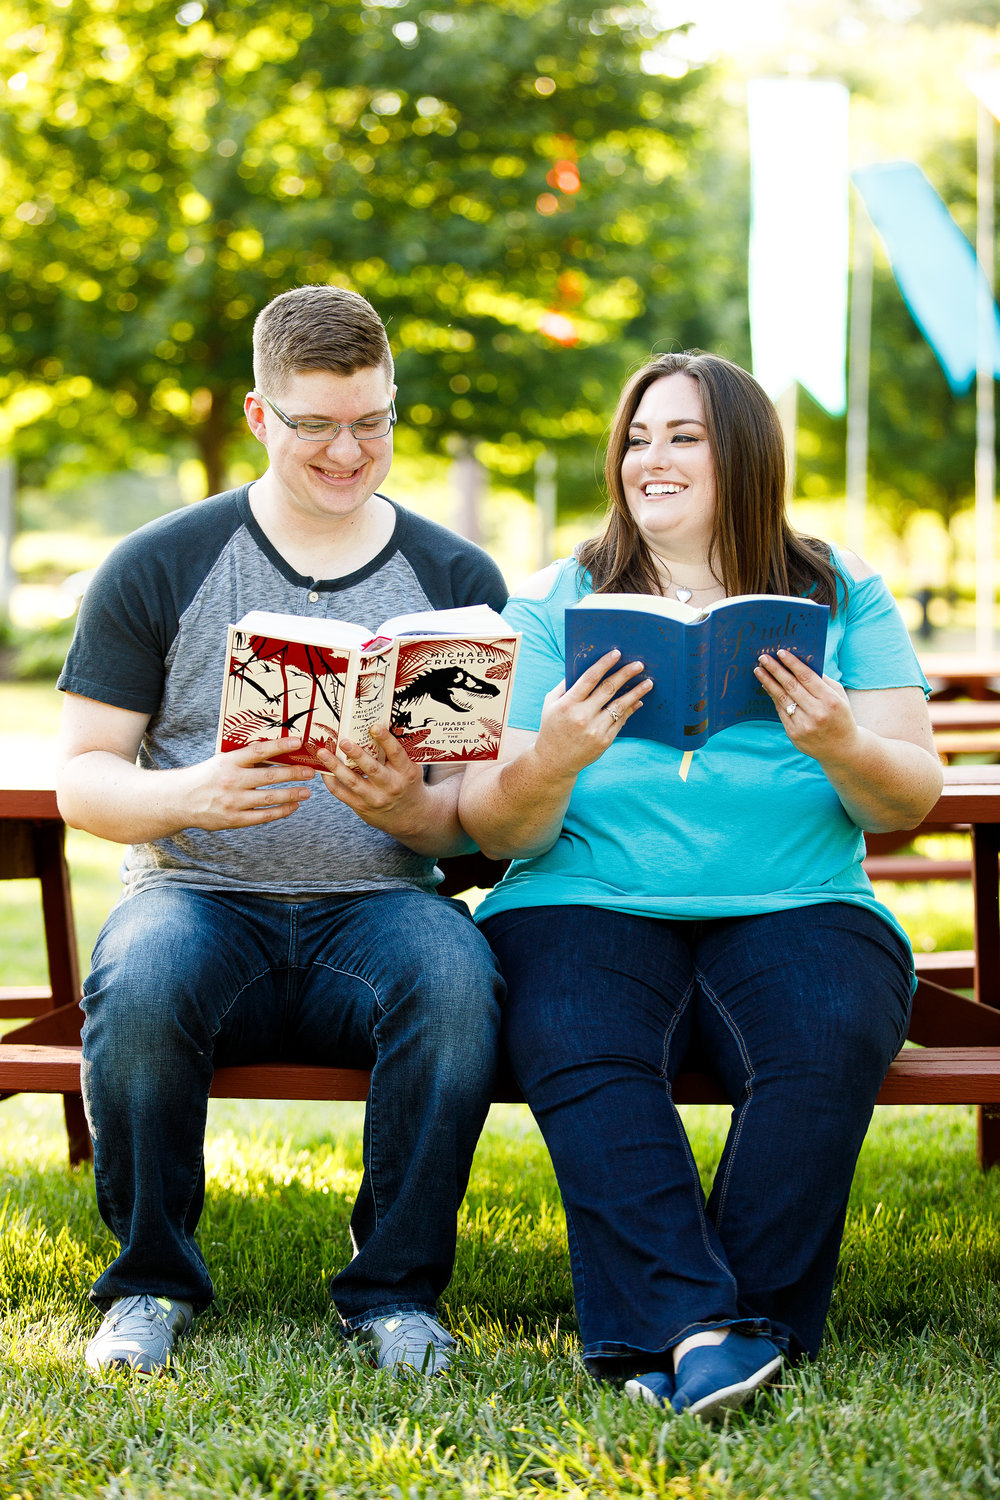 Busch Stadium and Forest Park Engagement Photos by St Louis Wedding Photographers and Videographers Oldani Photography 14.jpg